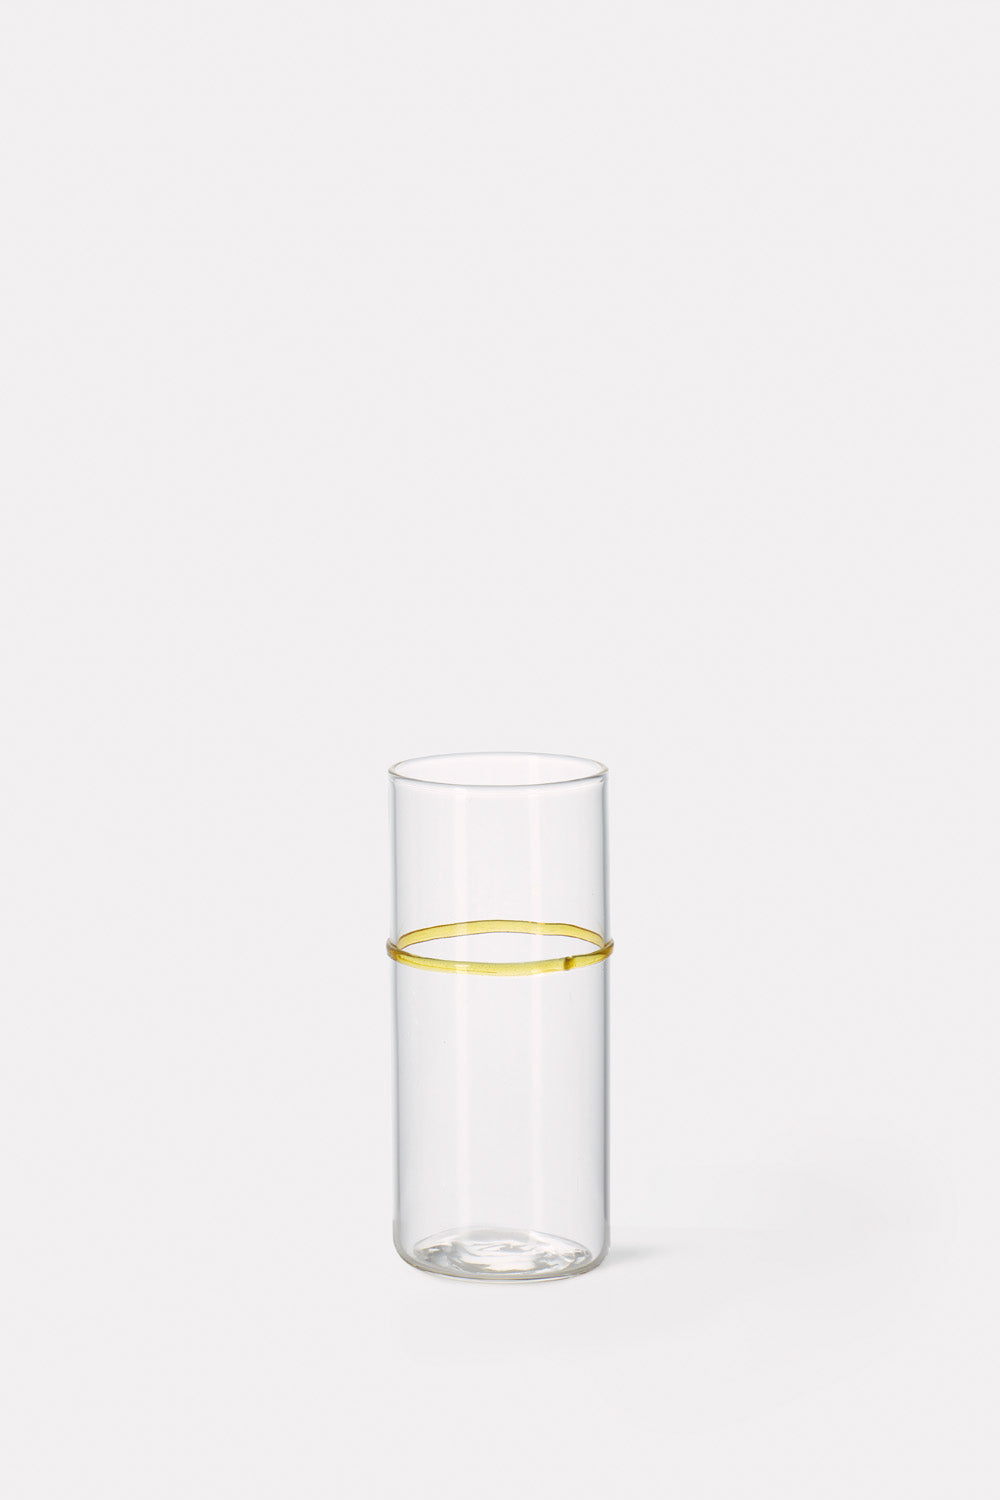 ACQUA E VINO - Yellow glass – Tall